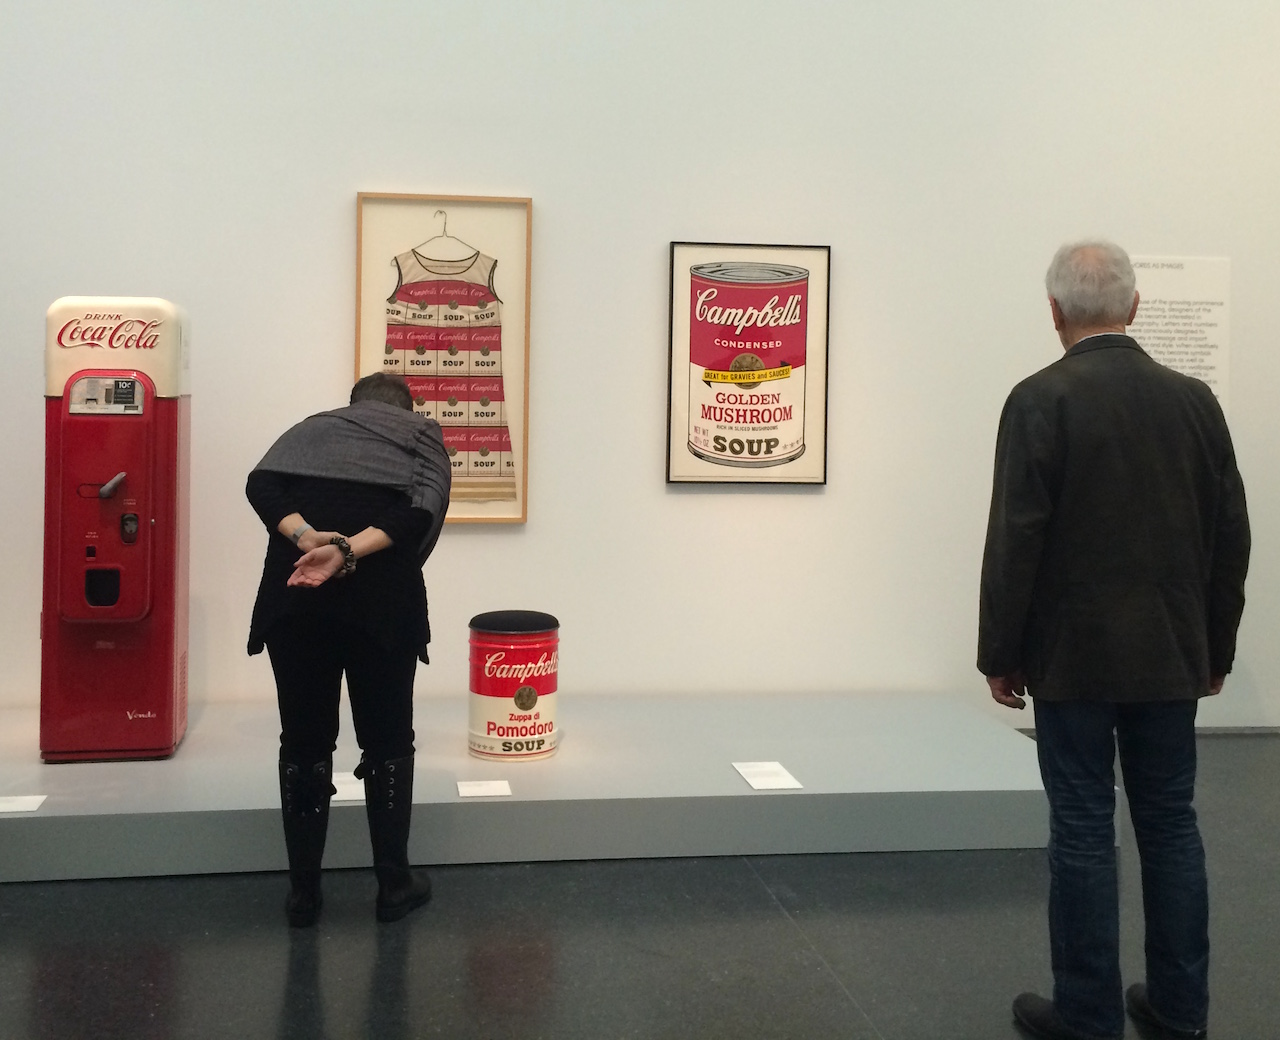 Installation view of 'Pop Art Design' at the Museum of Contemporary Art, Chicago (all photos by the author for Hyperallergic)